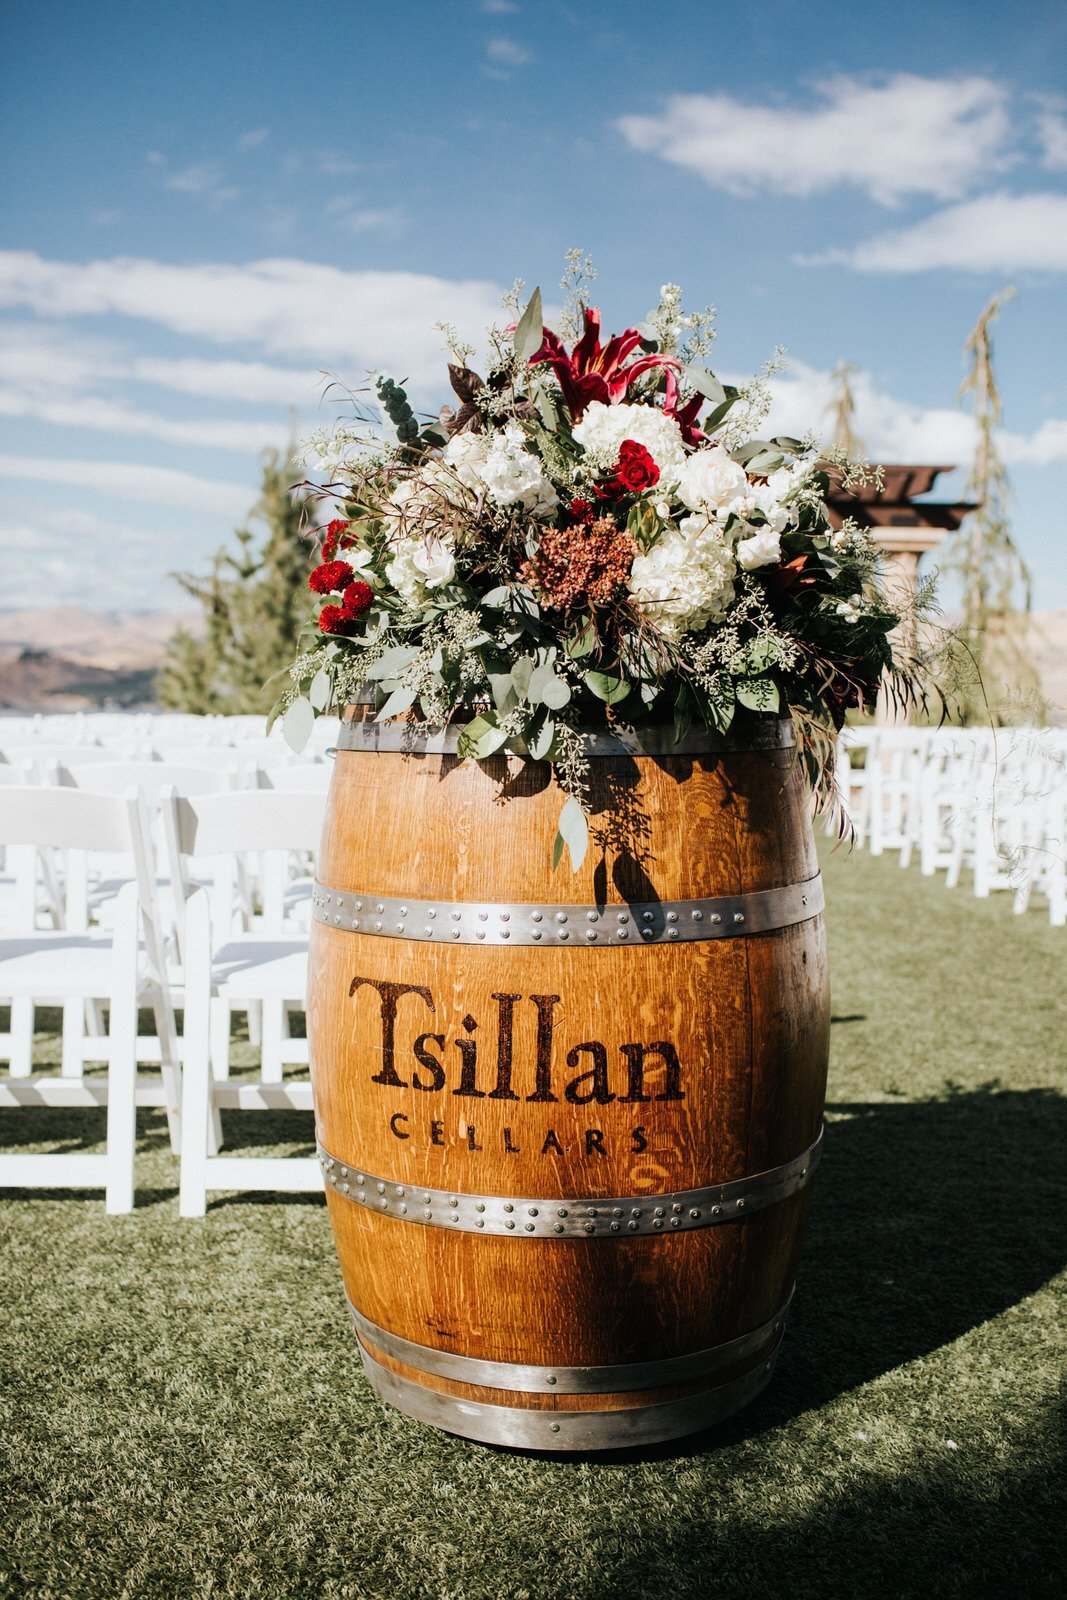 tsillan cellars wedding wiley putnam